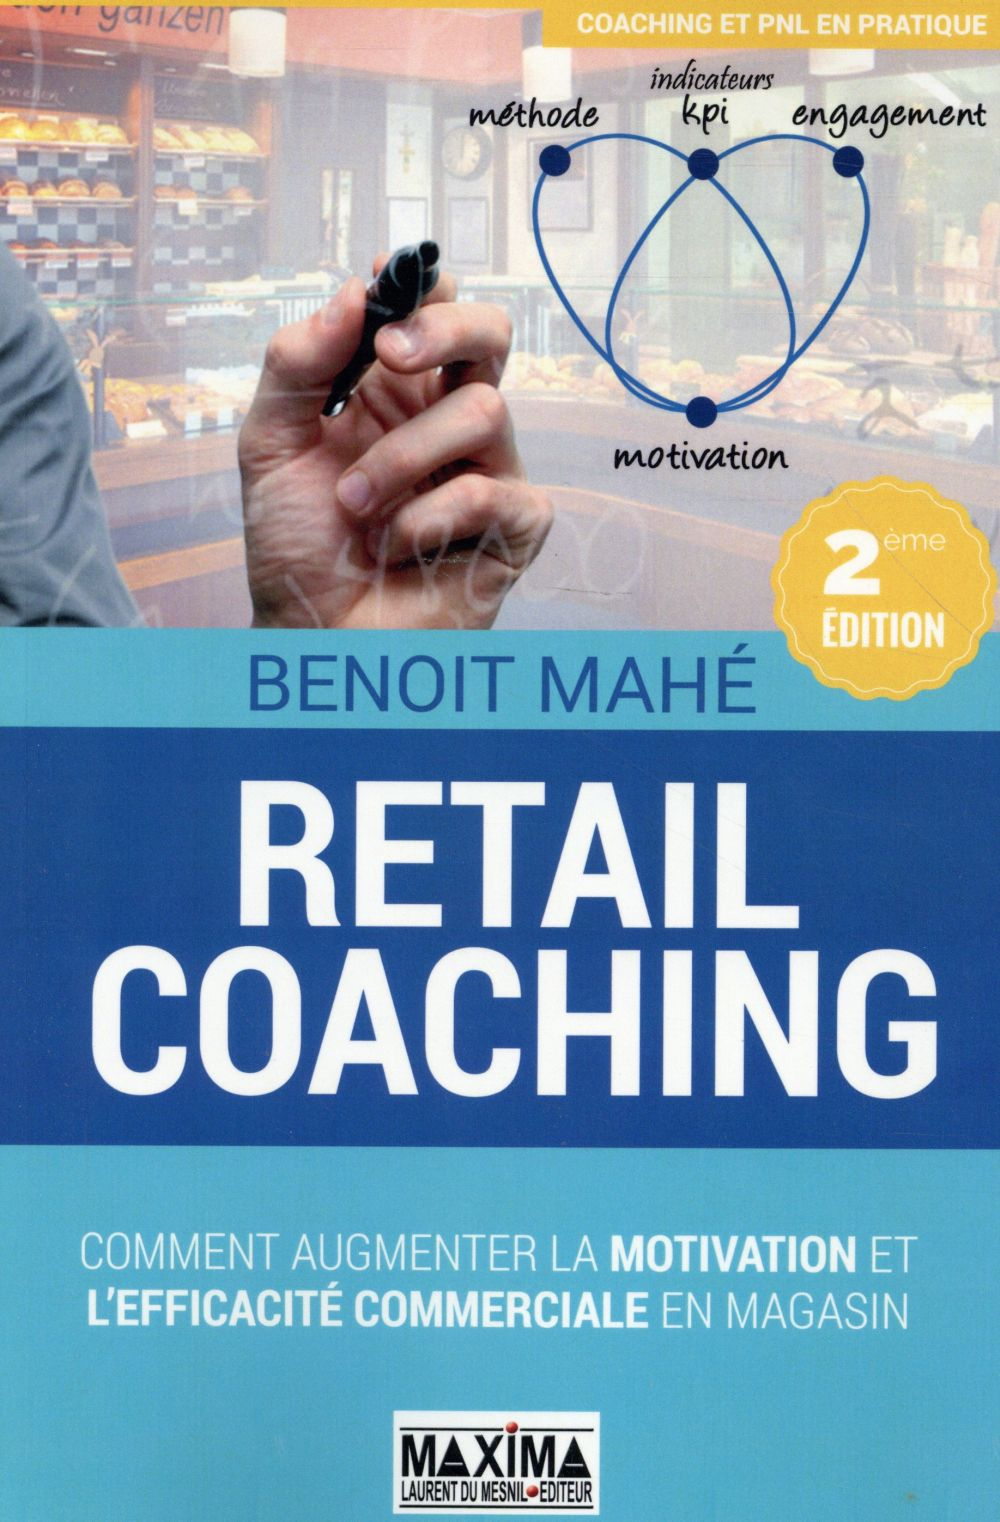 RETAIL COACHING  -  COACHING ET VENTE AU DETAIL (2E EDITION)